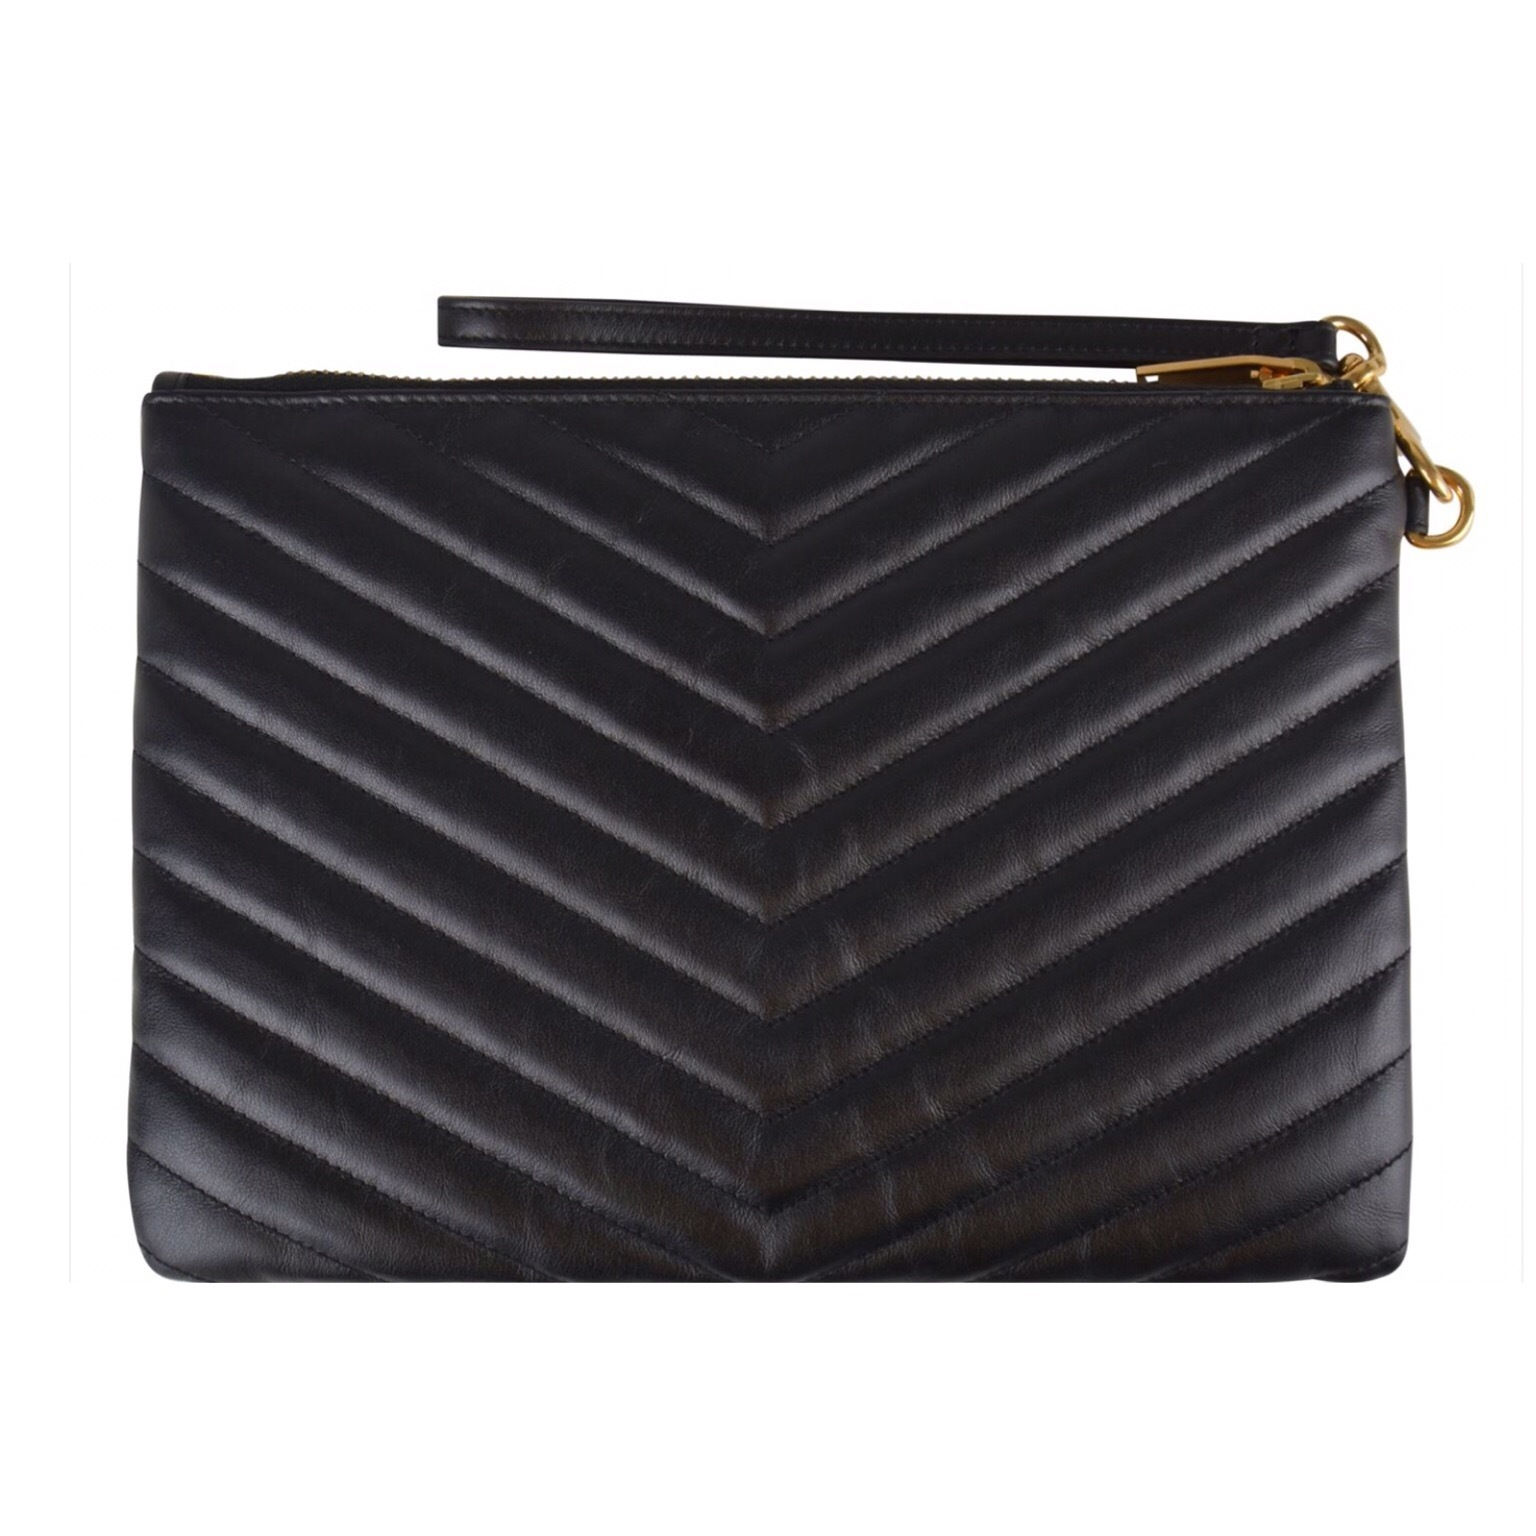 SAINT LAURENT MONOGRAMME QUILTED CLUTCH BAG 関税送料込